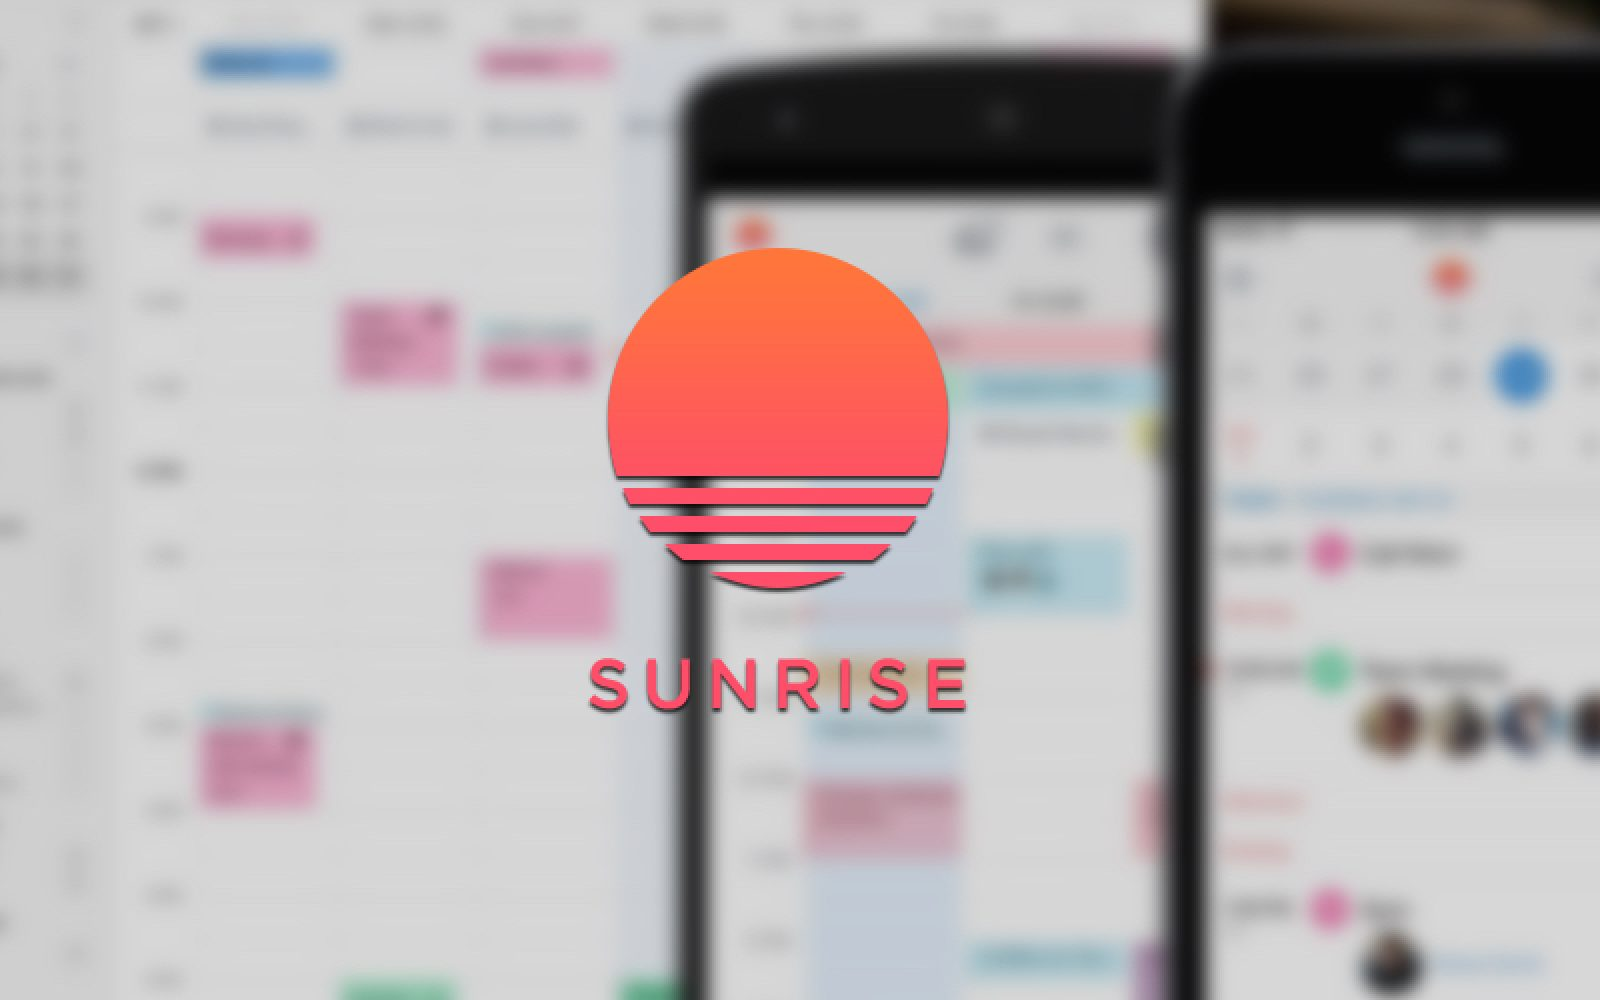 Sunrise app officially sunsetted as Outlook steals its thunder